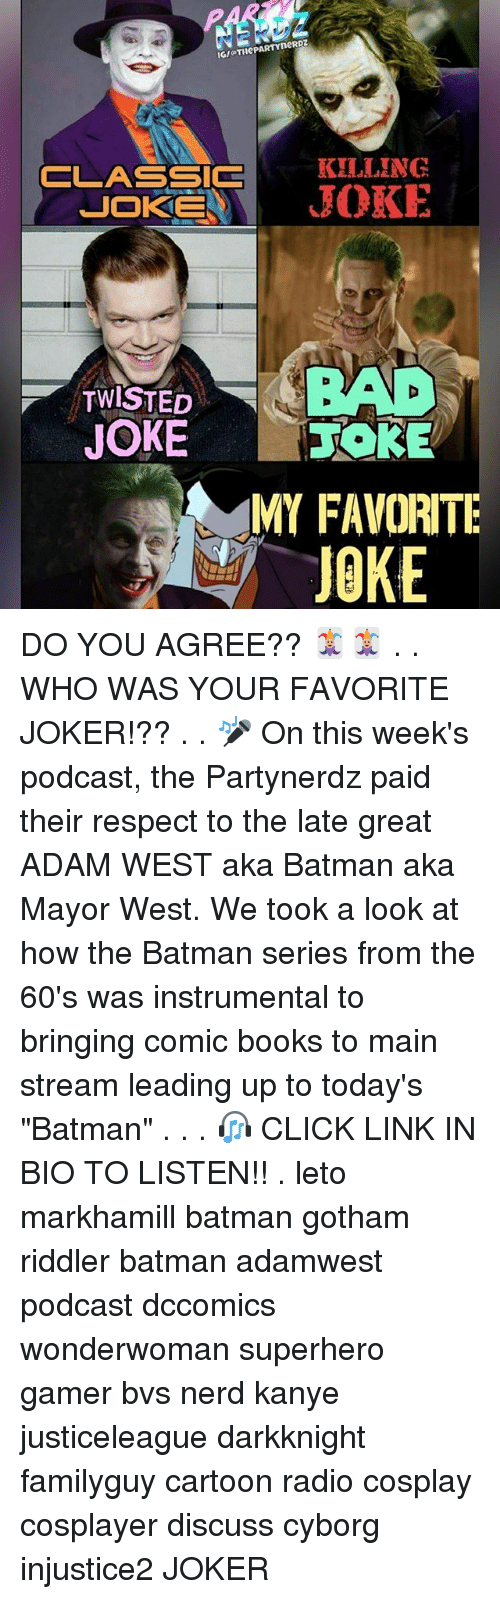 """Batman, Books, and Click: IGMOTHePARTYneRDZ  CLASSIC  KILLING  JOKE  JOKES  TWISTED  JOKE  MY FAVORITE  JOKE DO YOU AGREE?? 🃏🃏 . . WHO WAS YOUR FAVORITE JOKER!?? . . 🎤 On this week's podcast, the Partynerdz paid their respect to the late great ADAM WEST aka Batman aka Mayor West. We took a look at how the Batman series from the 60's was instrumental to bringing comic books to main stream leading up to today's """"Batman"""" . . . 🎧 CLICK LINK IN BIO TO LISTEN!! . leto markhamill batman gotham riddler batman adamwest podcast dccomics wonderwoman superhero gamer bvs nerd kanye justiceleague darkknight familyguy cartoon radio cosplay cosplayer discuss cyborg injustice2 JOKER"""